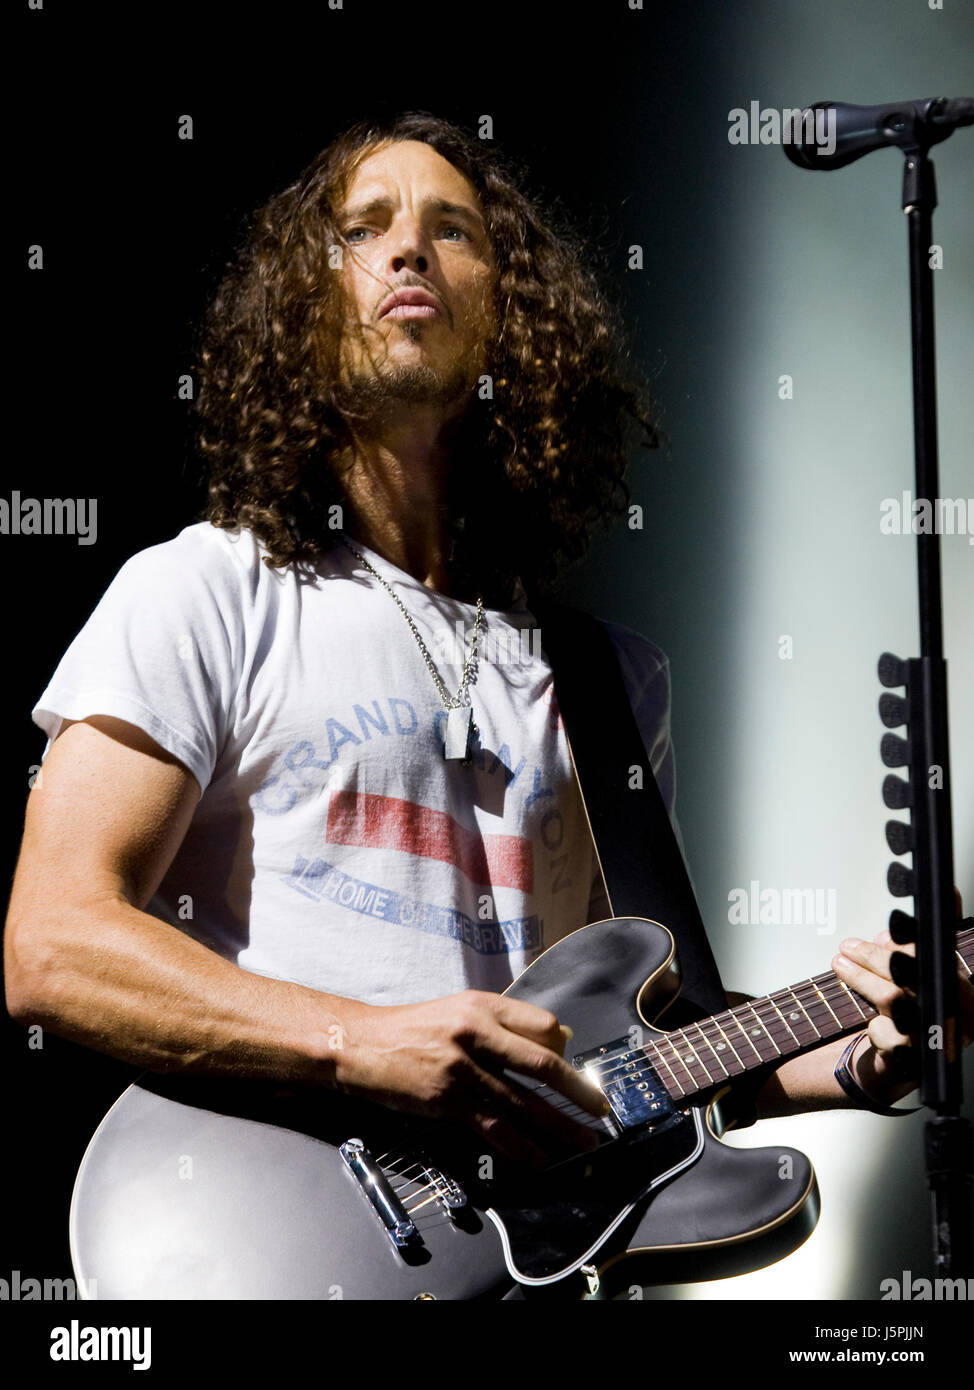 Soundgarden performs on day three of the Lollapalooza music festival in Chicago Illinois on August 7, 2010. Photo - Stock Image